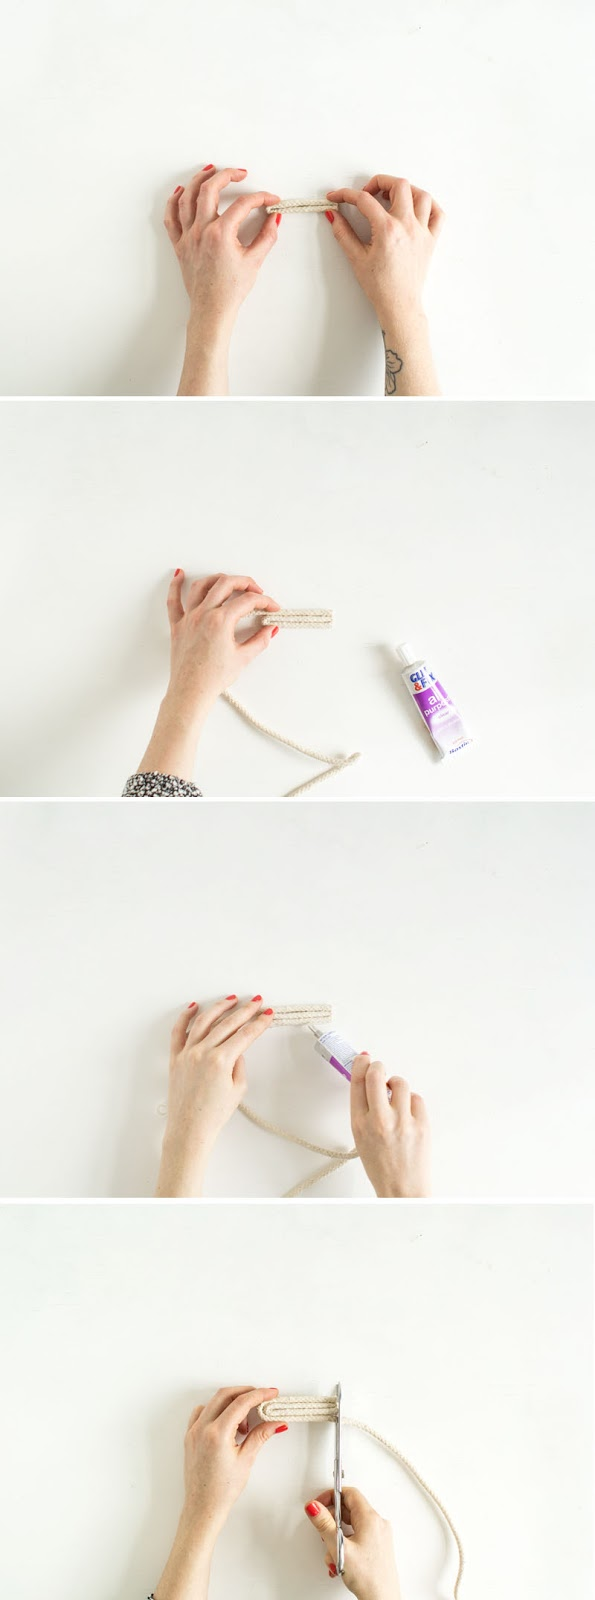 Diy salvamantel de cuerda